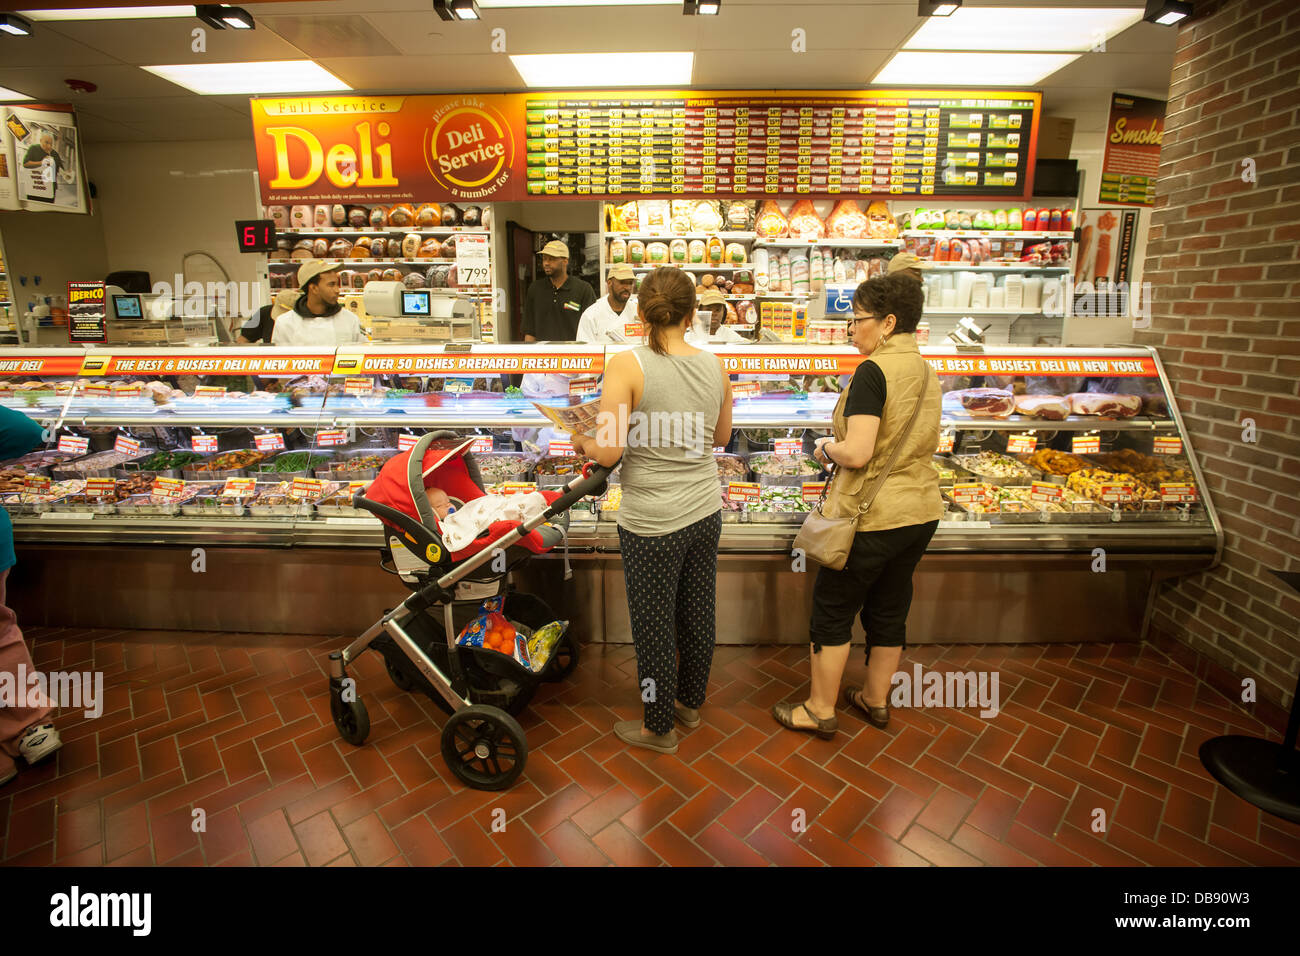 Fairway Shop Shoppers In The Deli Department At The Fairway Supermarket